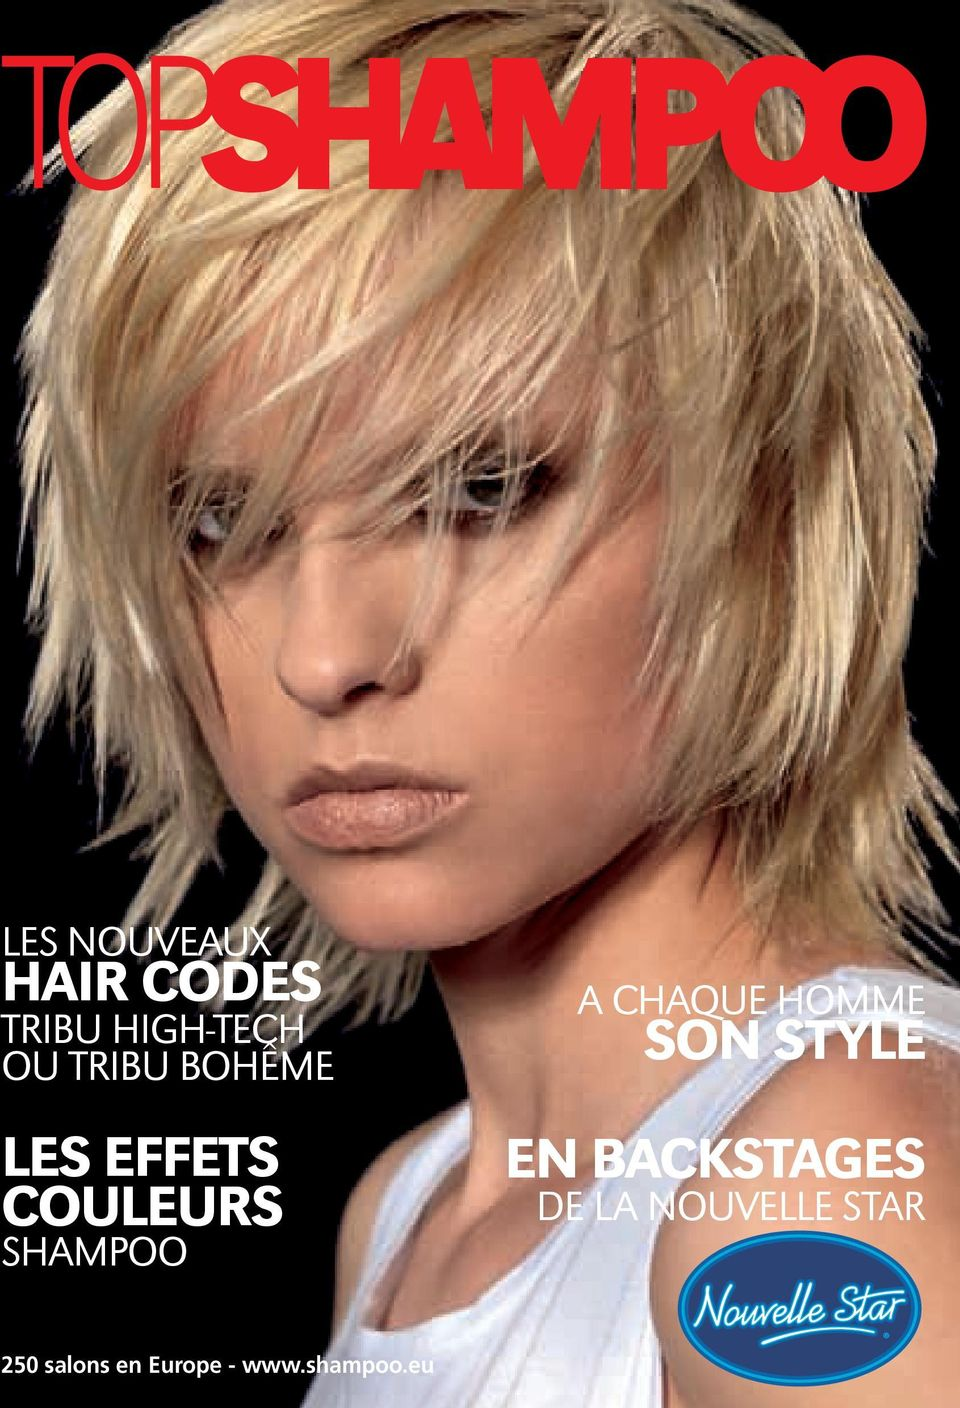 SHAMPOO A chaque homme SON STYLE EN BACKSTAGES